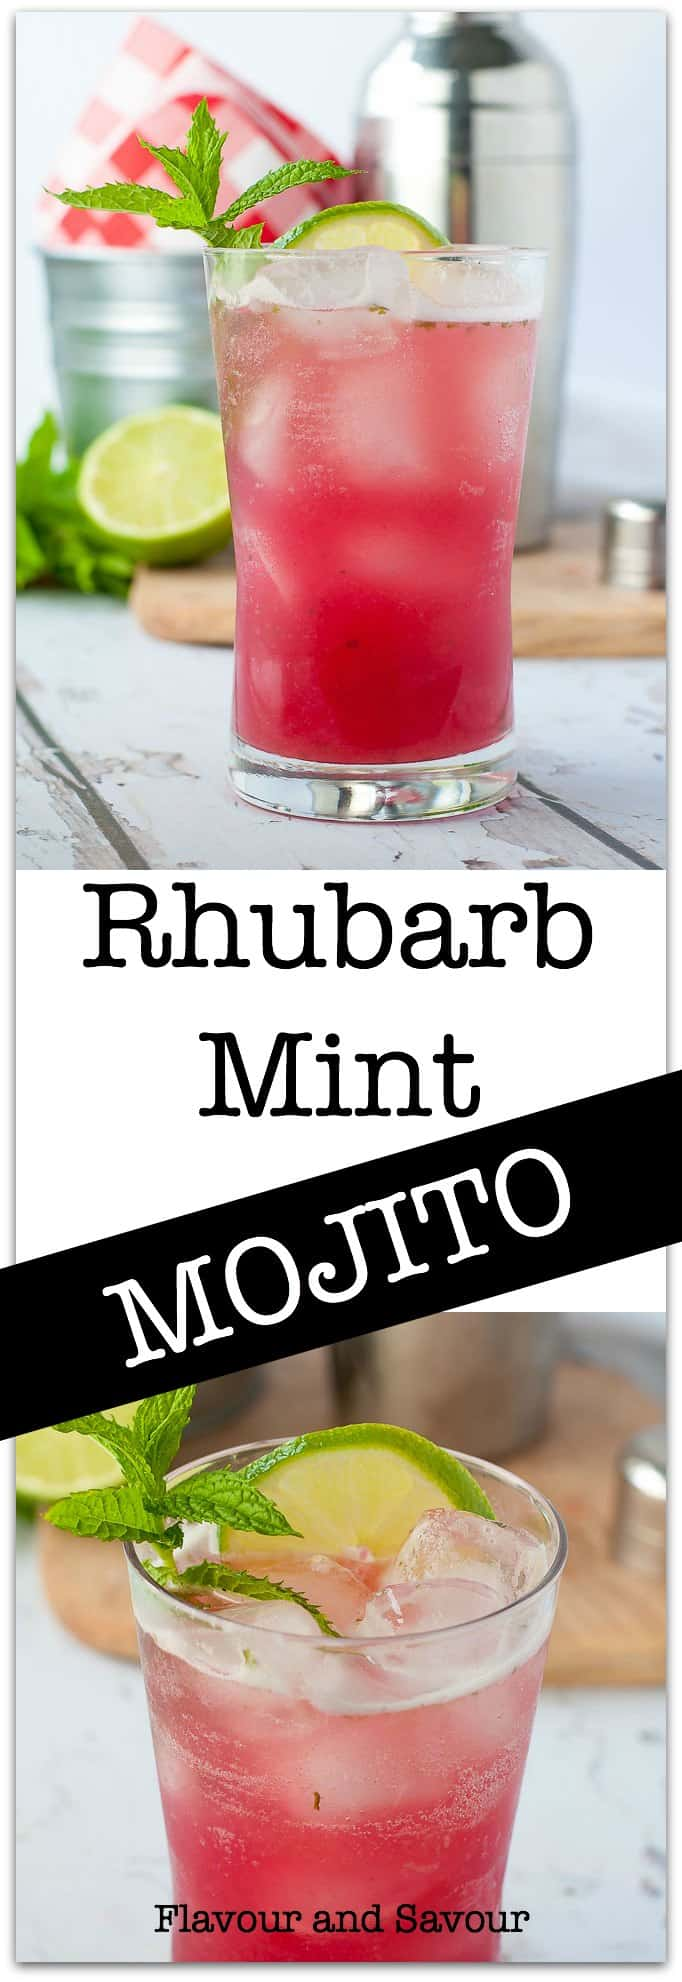 Welcome spring and summer weather with this Rhubarb Mint Mojito, made with fresh ingredients from your garden or farmer's market.